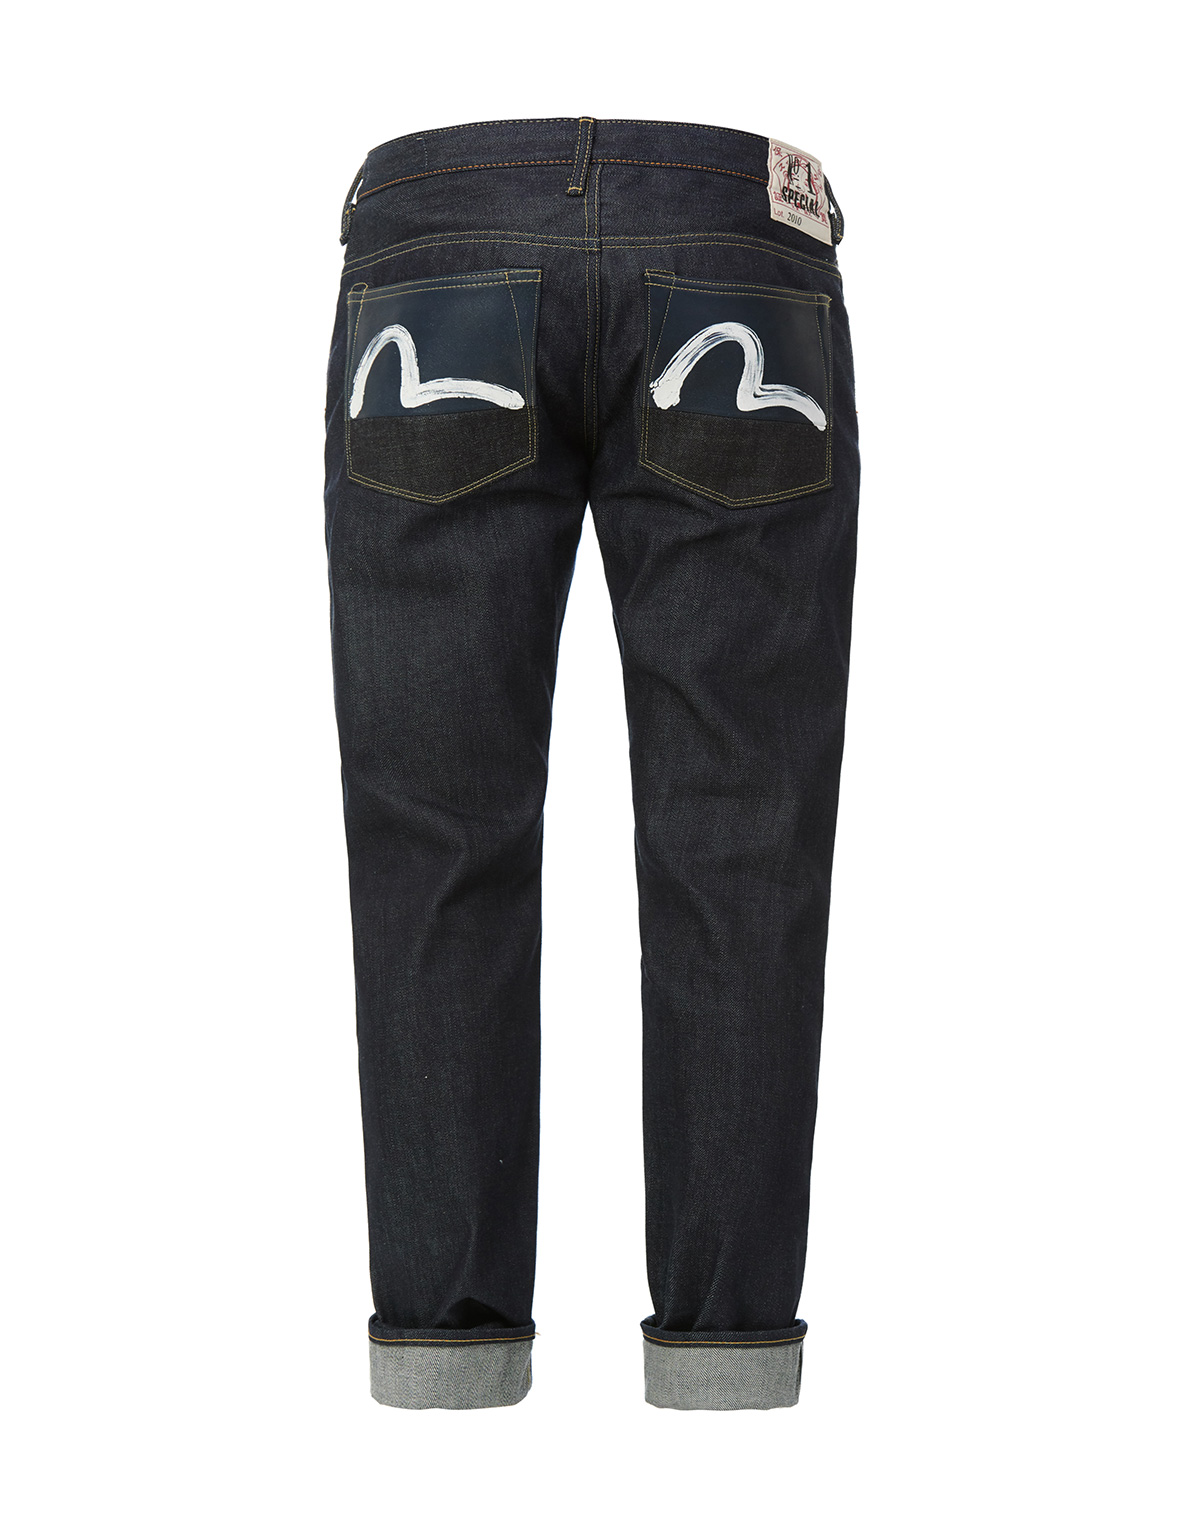 Leather-blocked Back Pockets and Hand-painted Seagull Slim Fit Jeans 2010